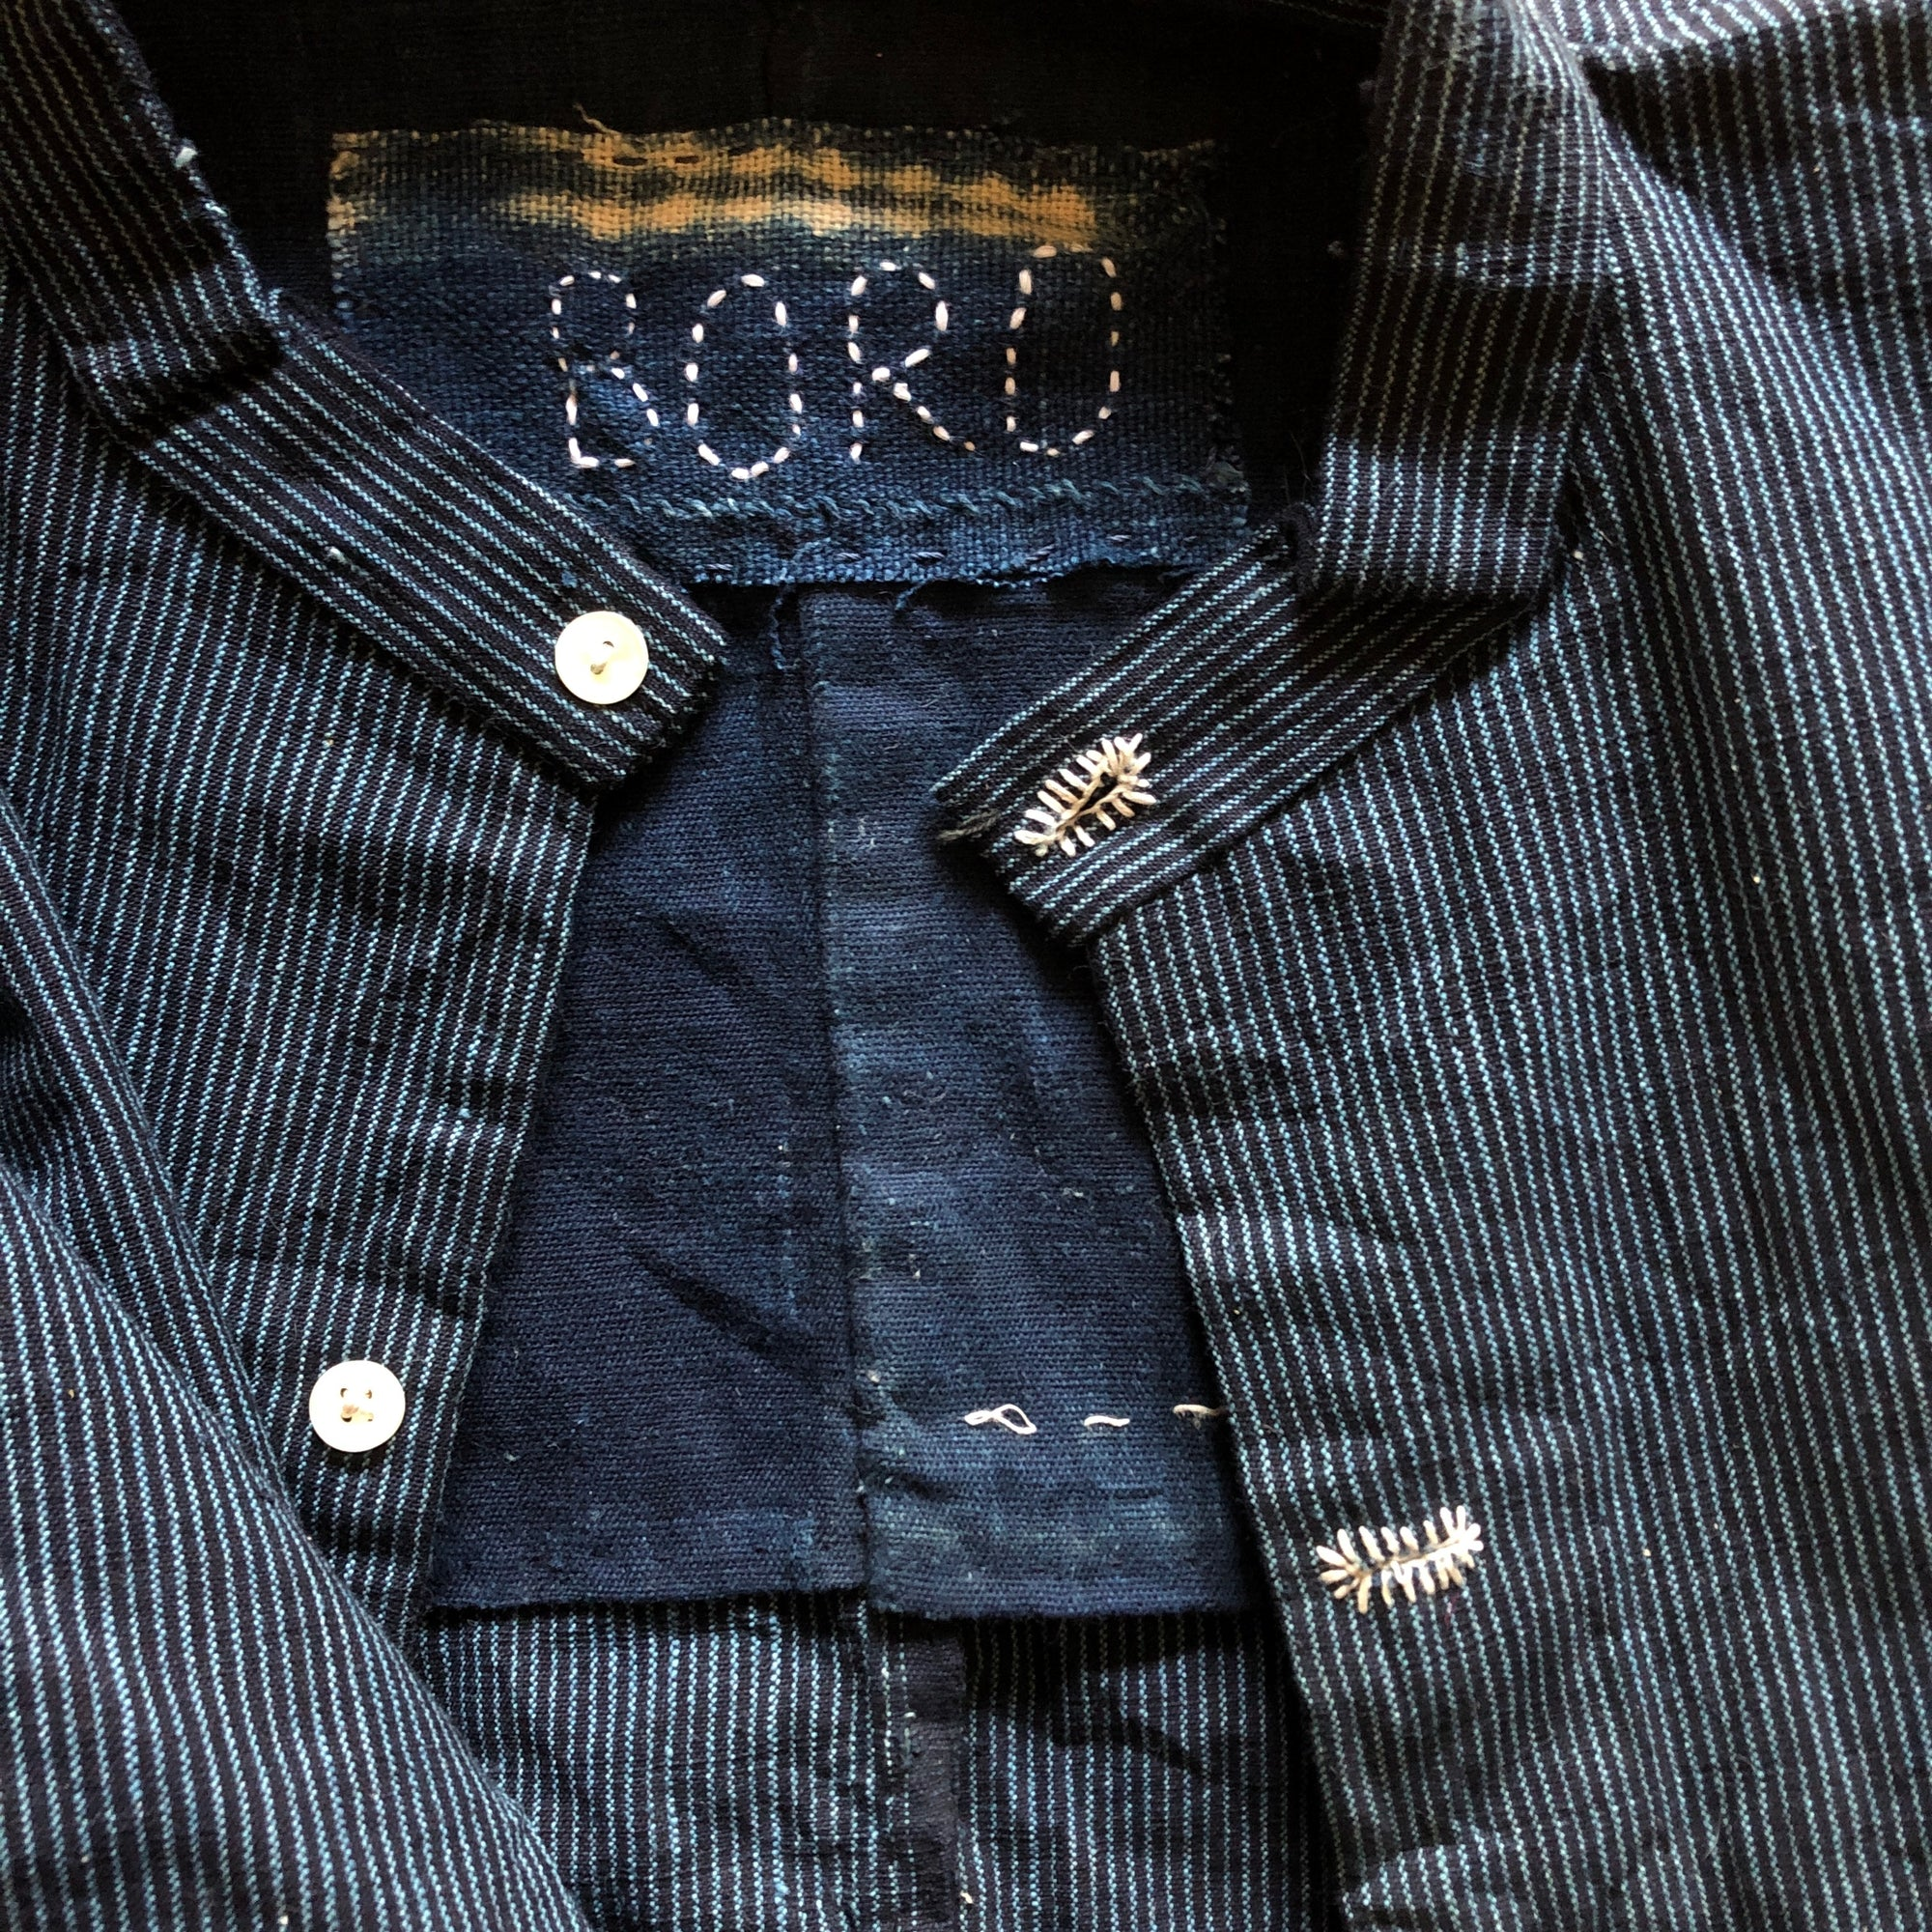 Antique Japanese Indigo Shirt Apparel Boro - Stash Co